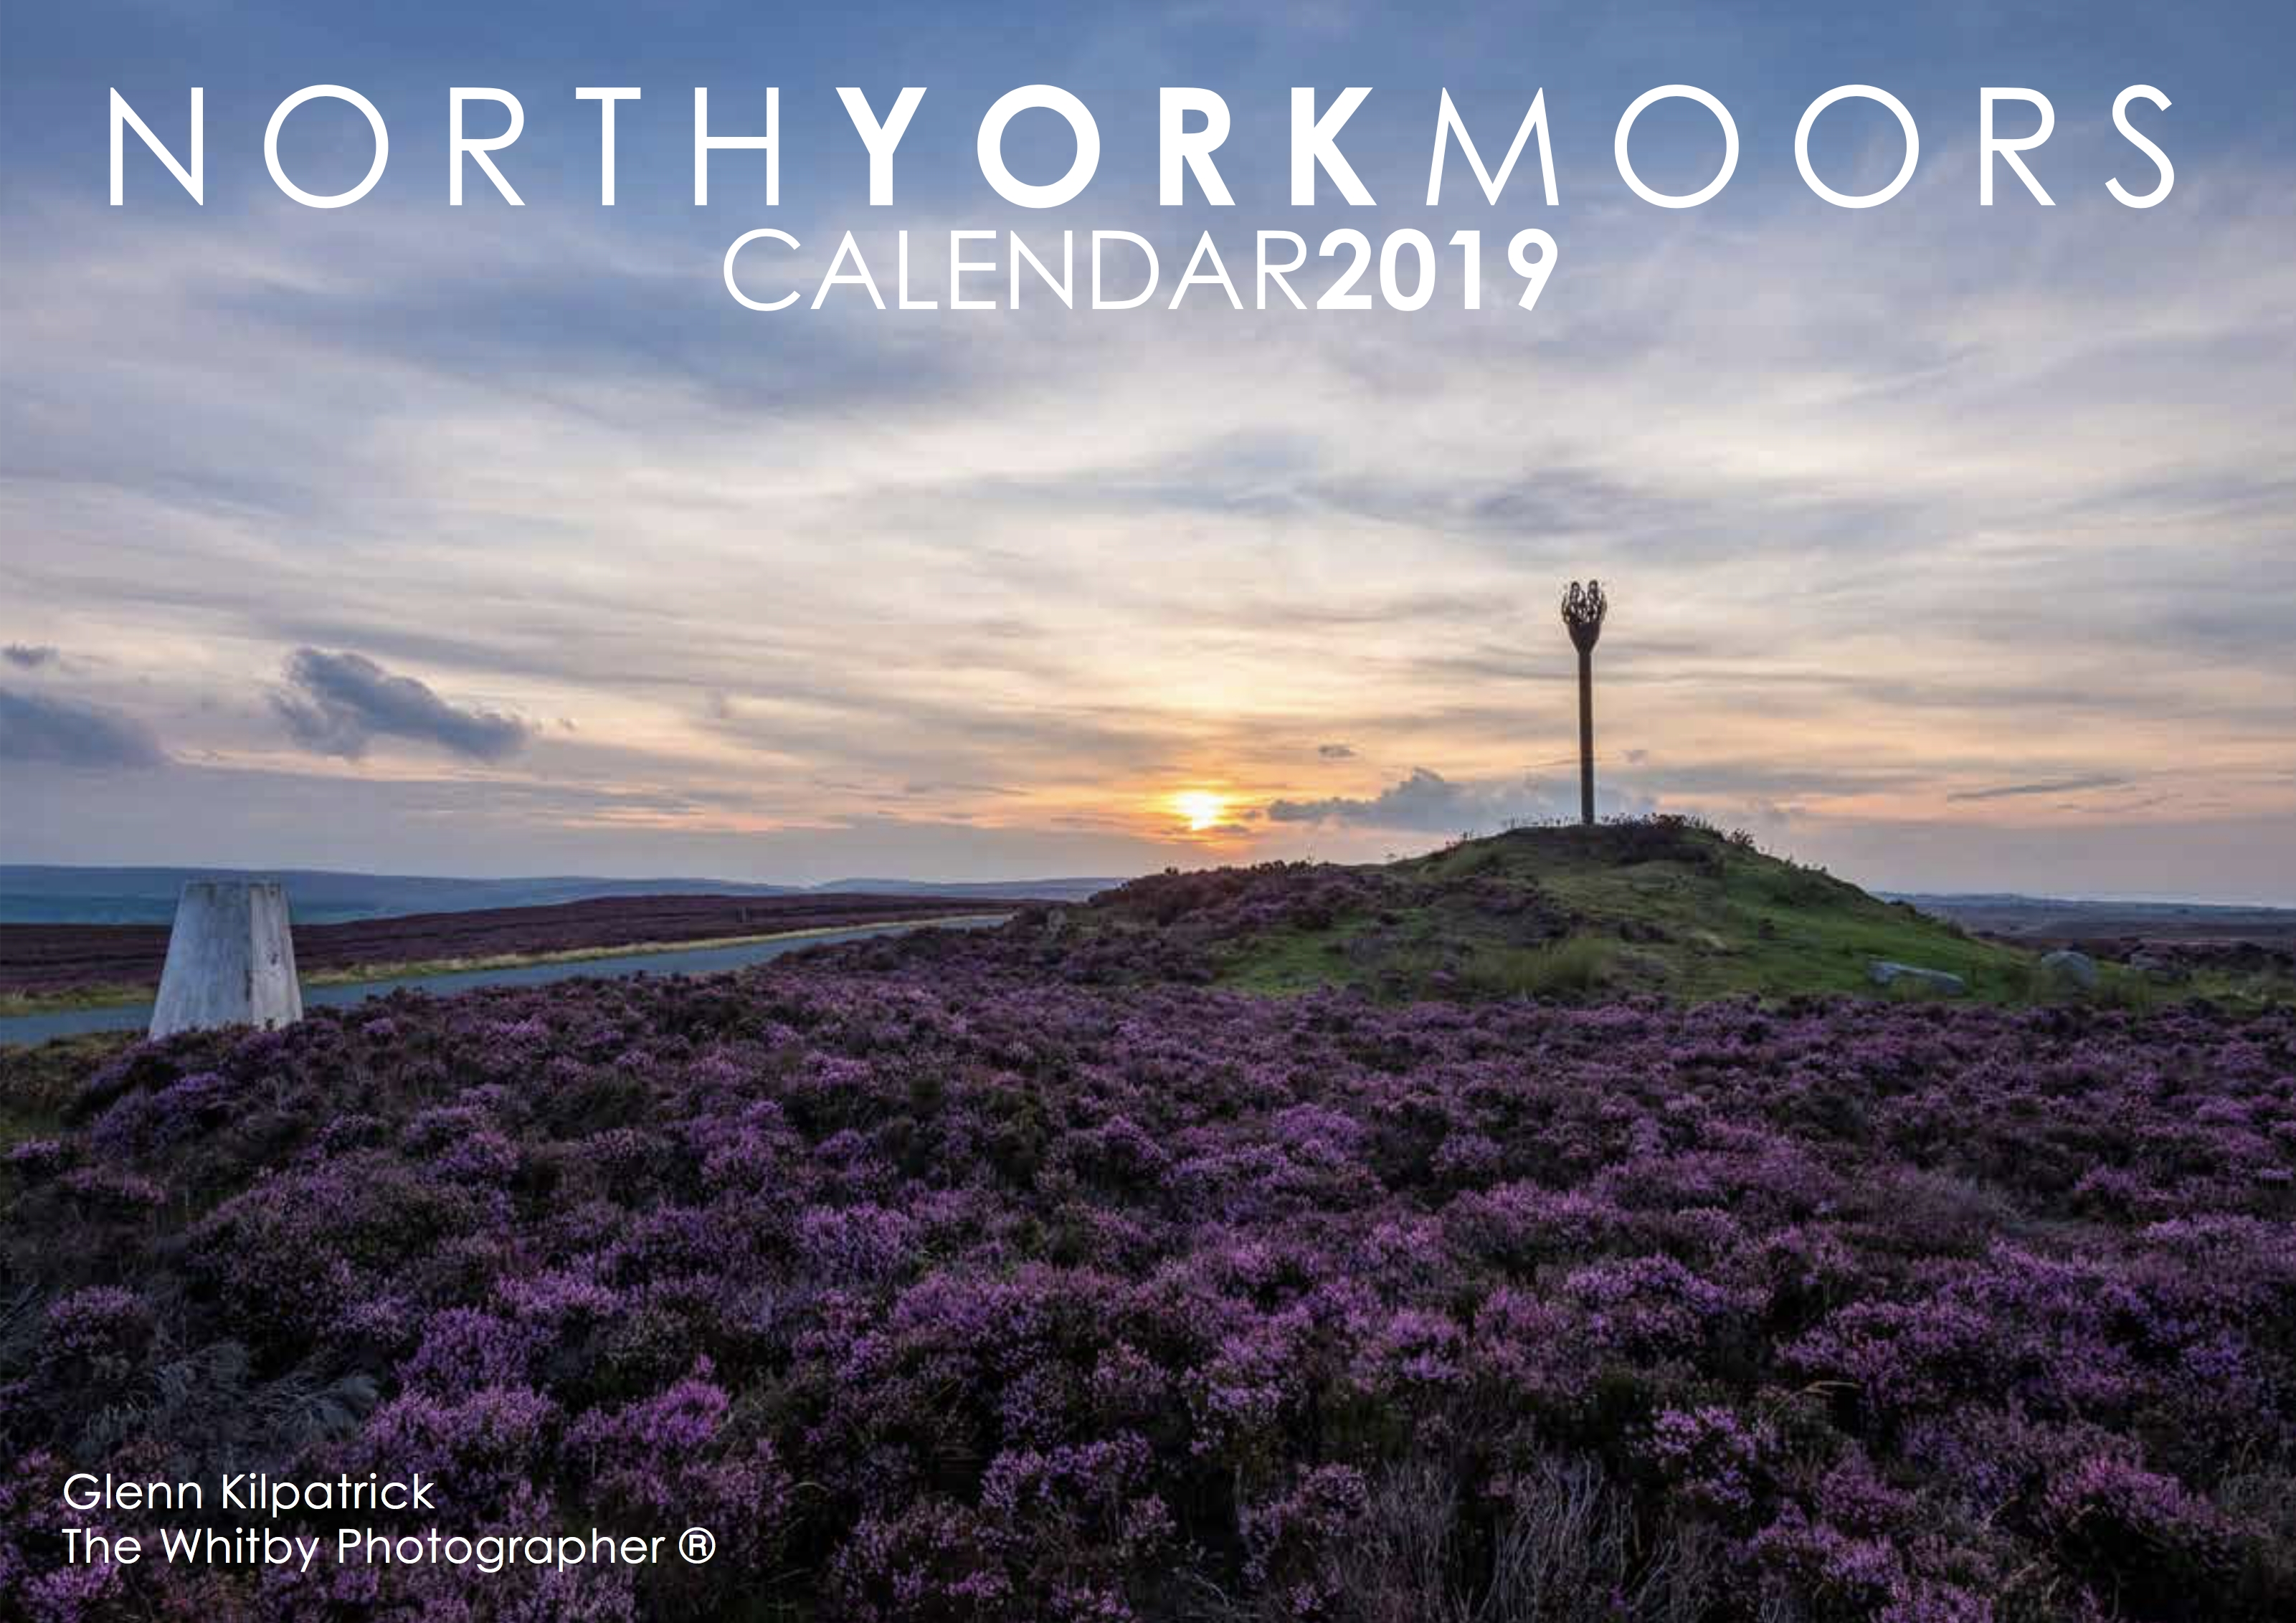 Sold Out The North York Moors Calendar 2019 (Yorkshire) - Whitby Calendar 2019 Yorkshire